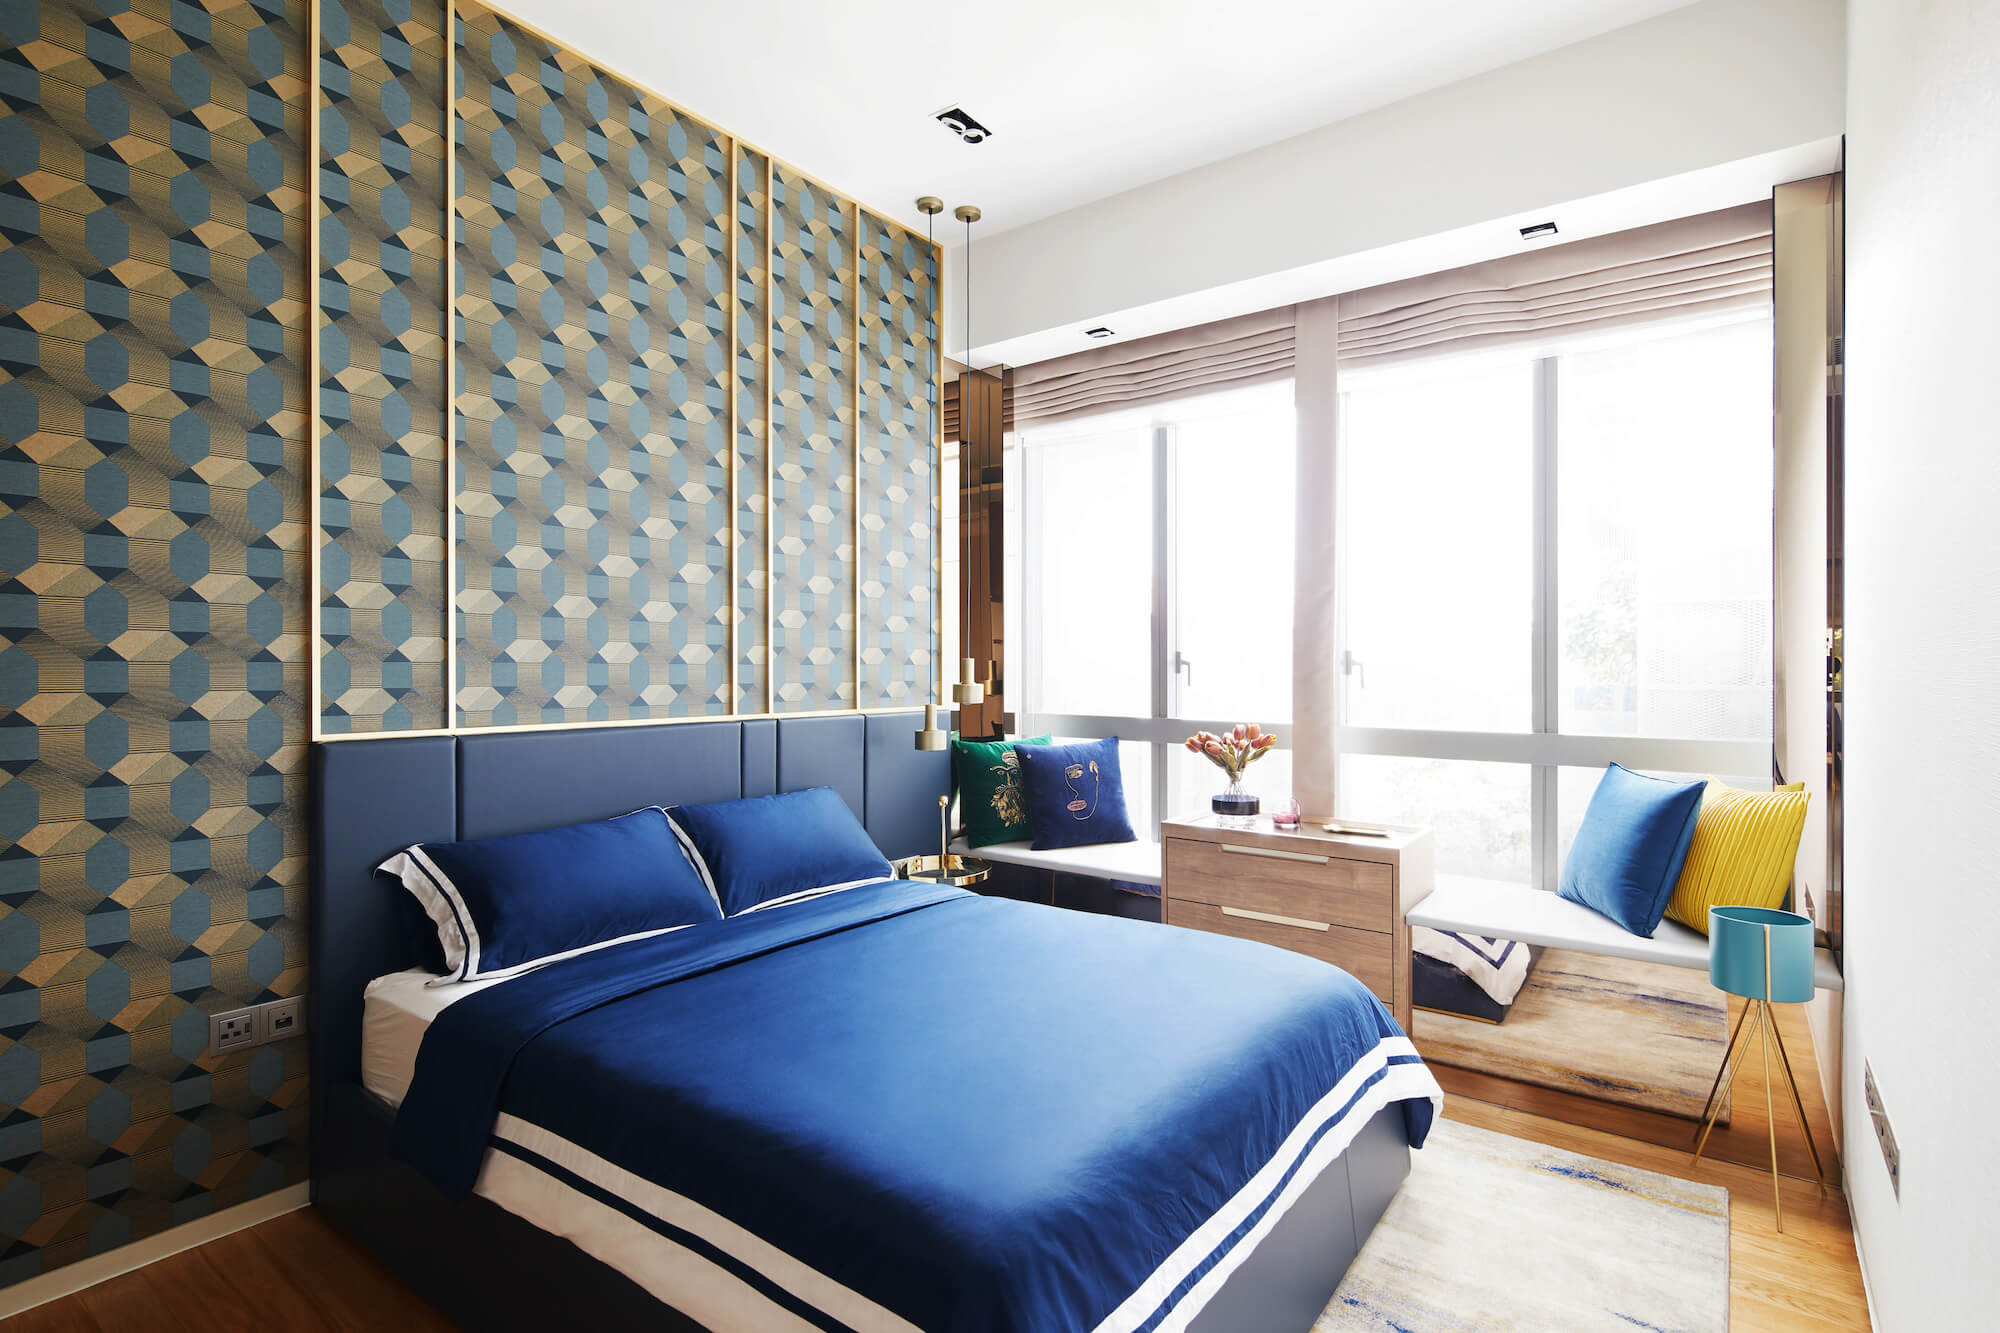 Putting Together a Beautiful Guest Room in Your HDB Flat